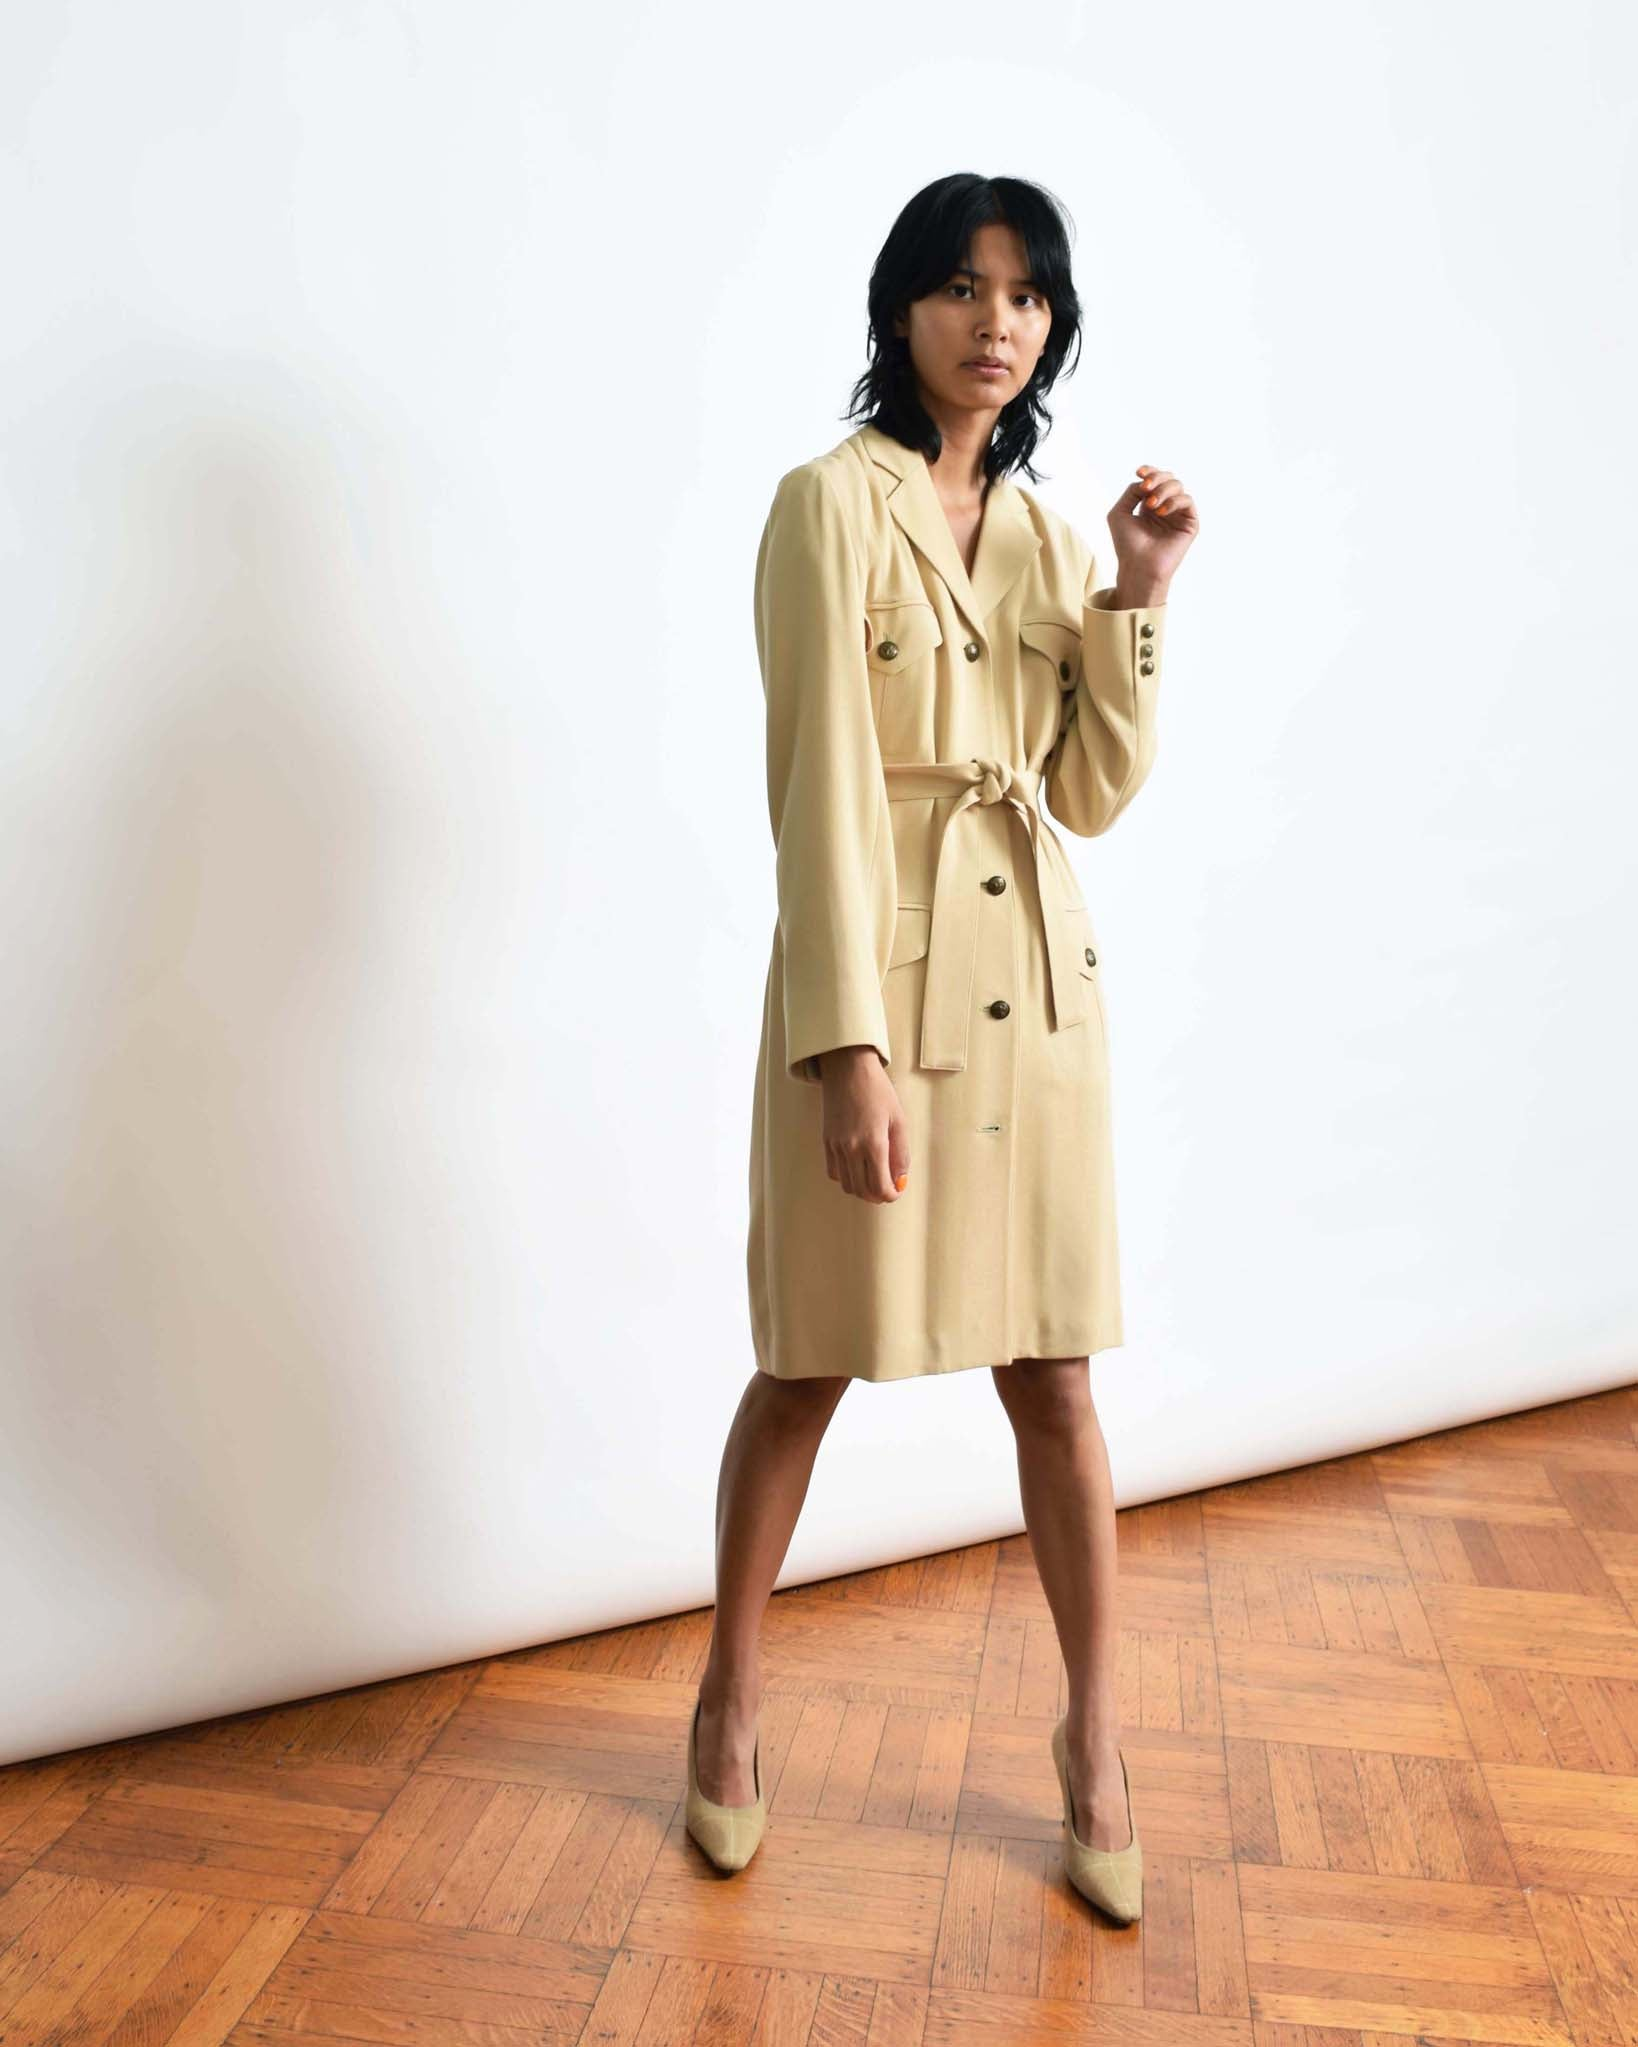 Vintage Emanuel Ungaro Suit Dress